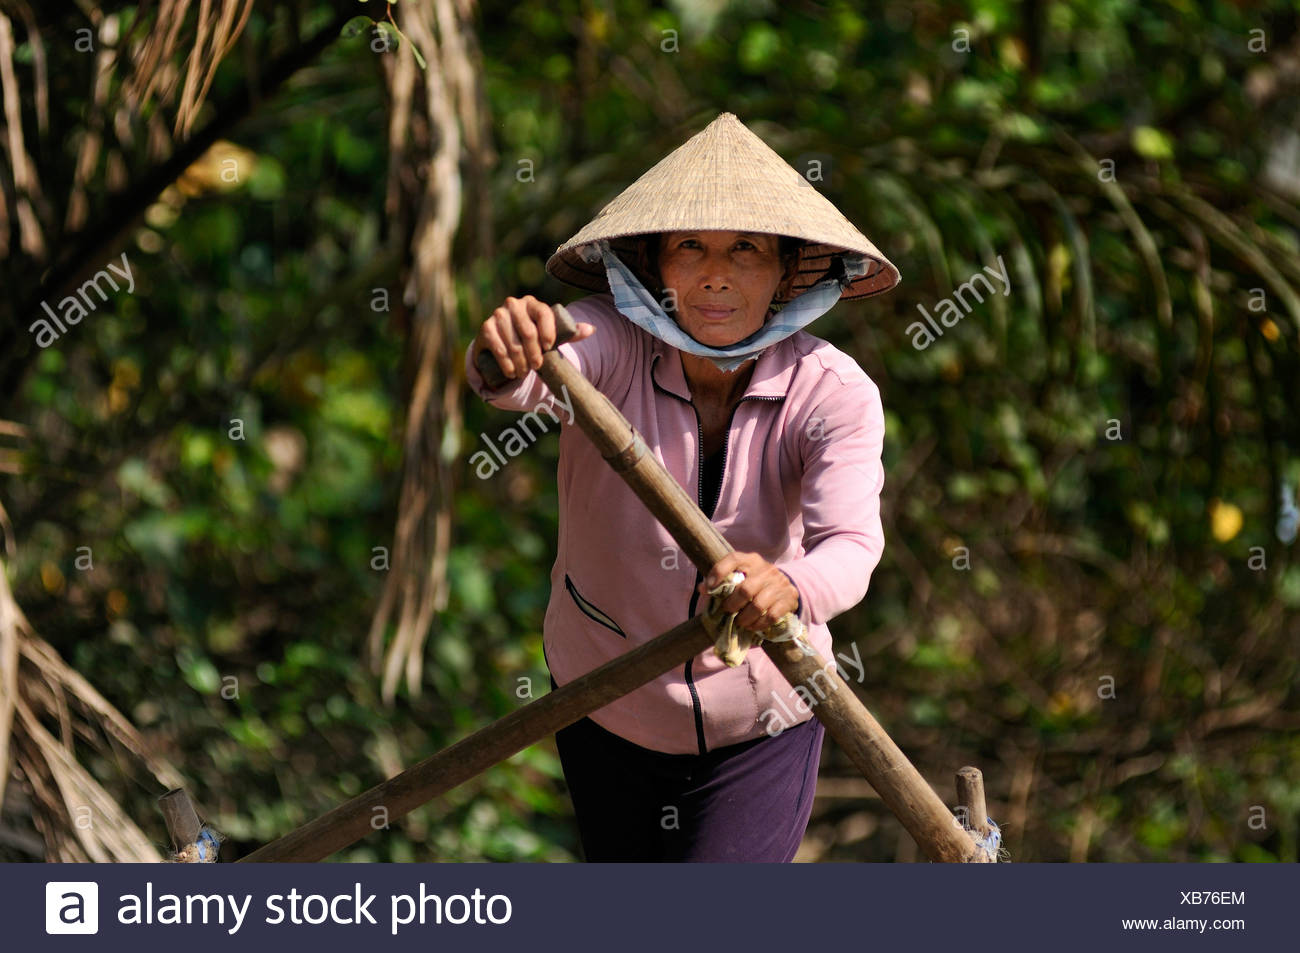 Woman with a traditional hat, cone-shaped hat made of palm leaves, rowing a wooden boat full of fruit on the mekong, Can Tho, M - Stock Image